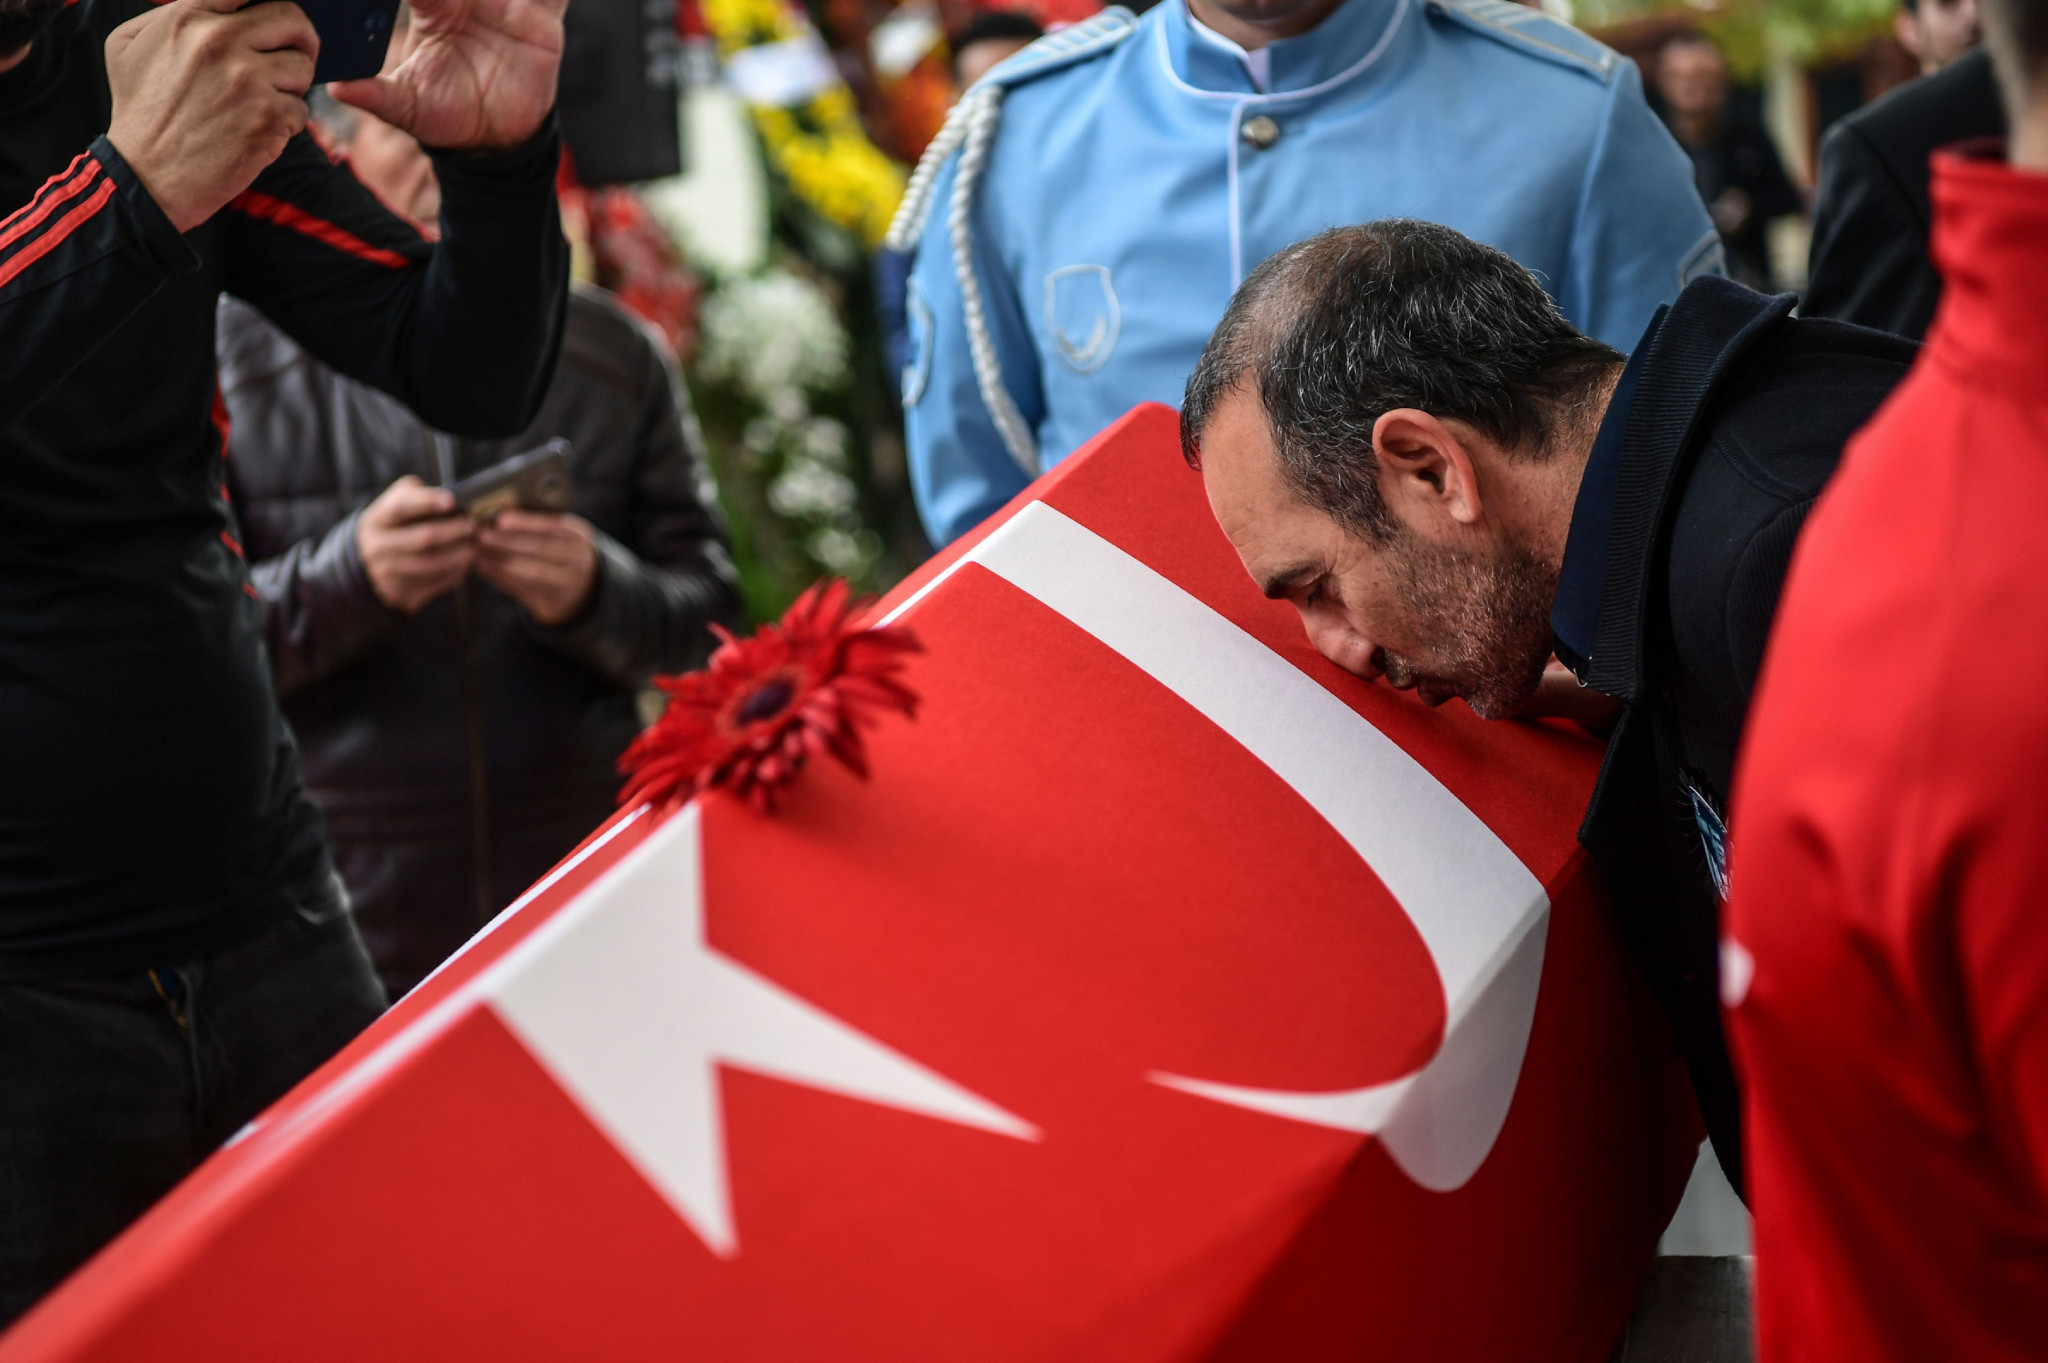 Valerios Leonidis won in the behaviour category for attending the funeral of Turkish rival Naim Süleymanoğlu and kissing his coffin ©Getty Images